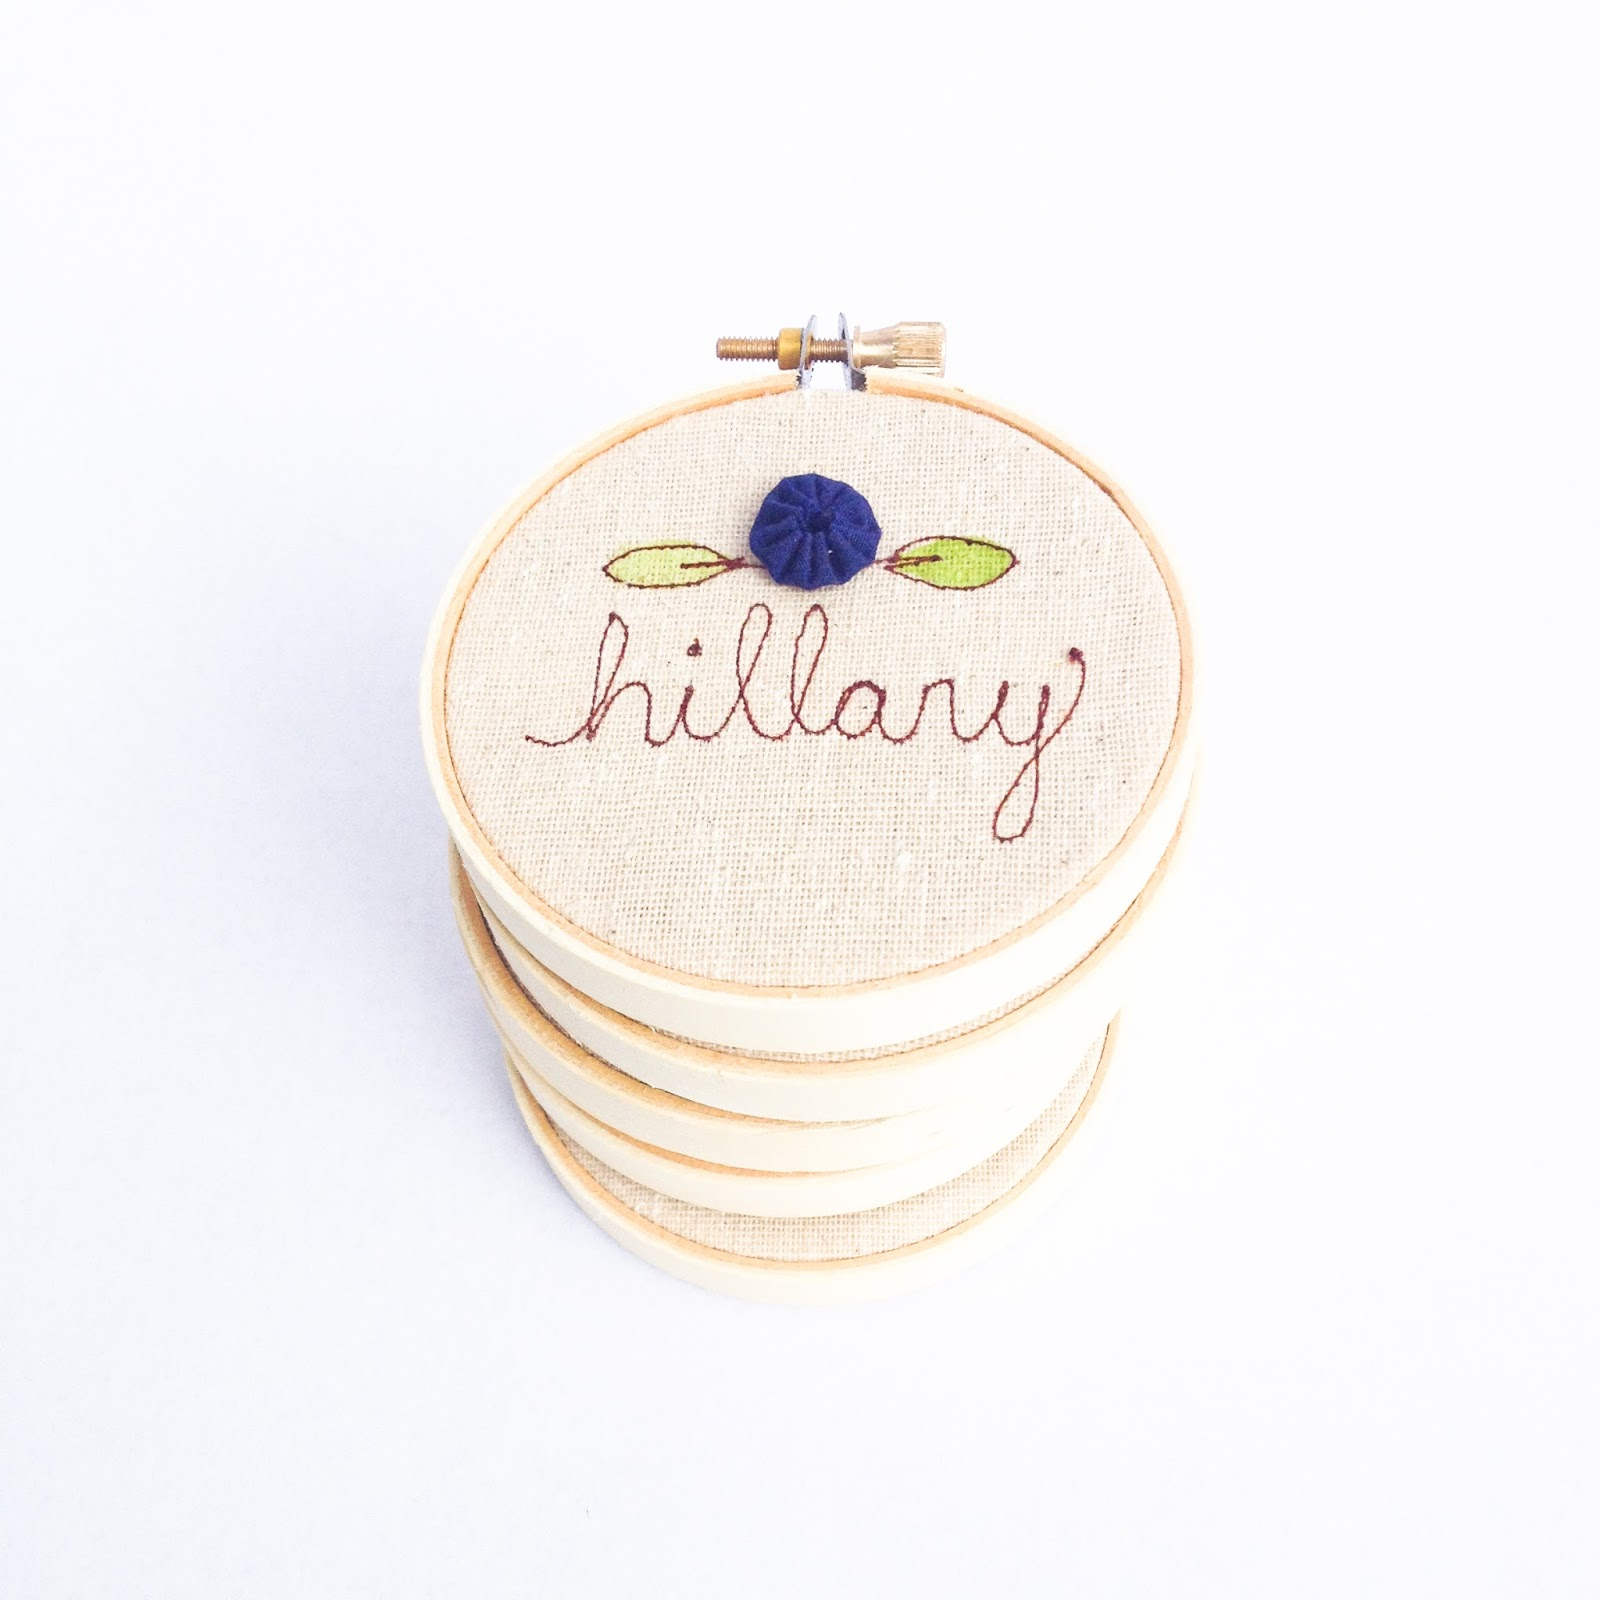 https://www.etsy.com/listing/180463163/table-place-card-hoop-art-table-decor?ref=shop_home_active_2